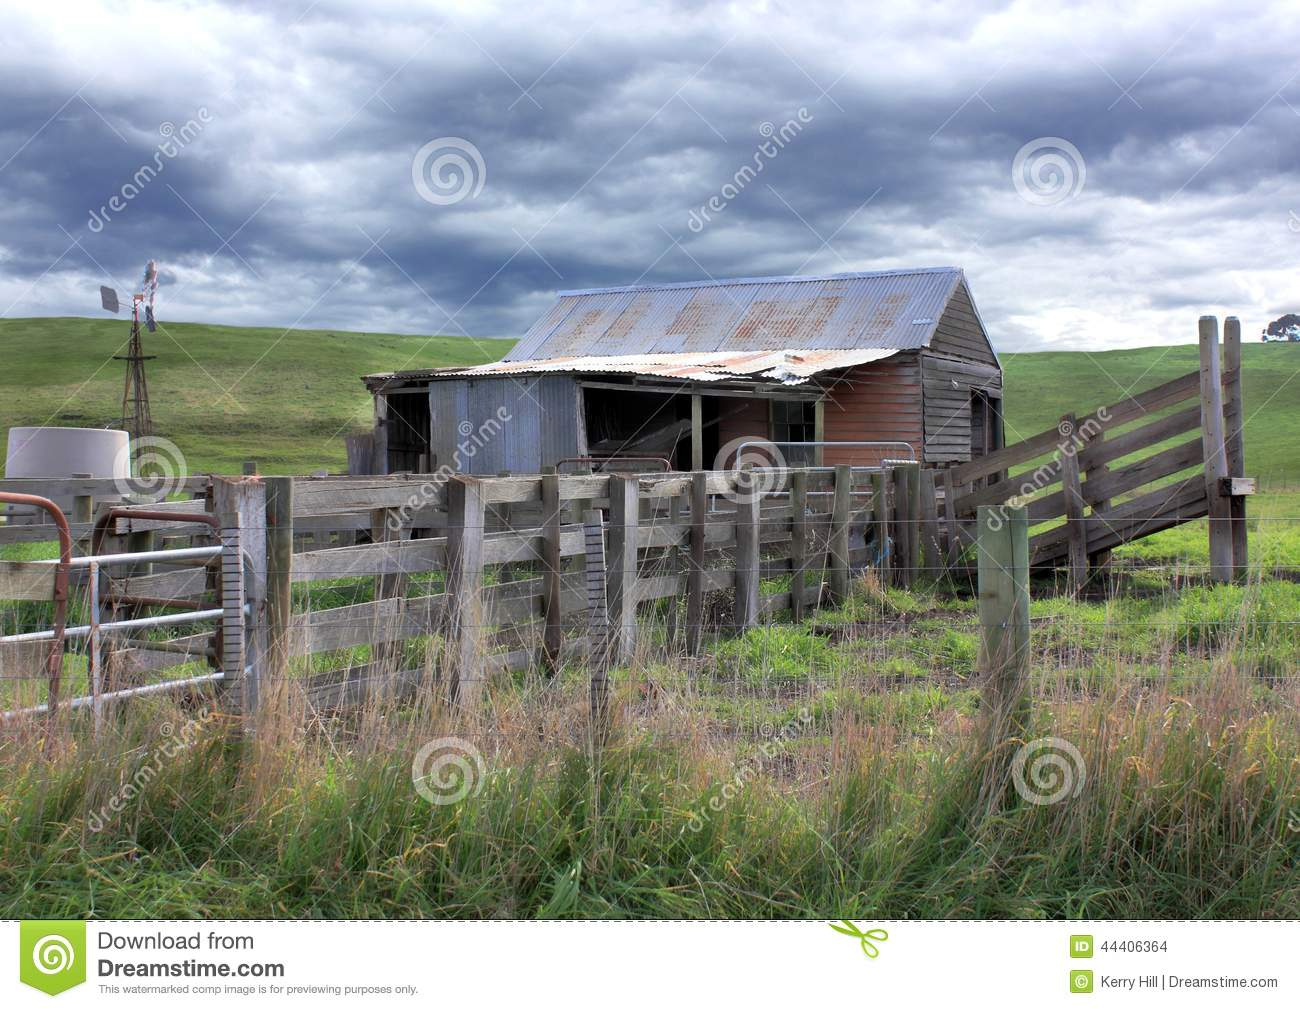 Old Rundown Shed And Cattle Yards Stock Photo - Image ...